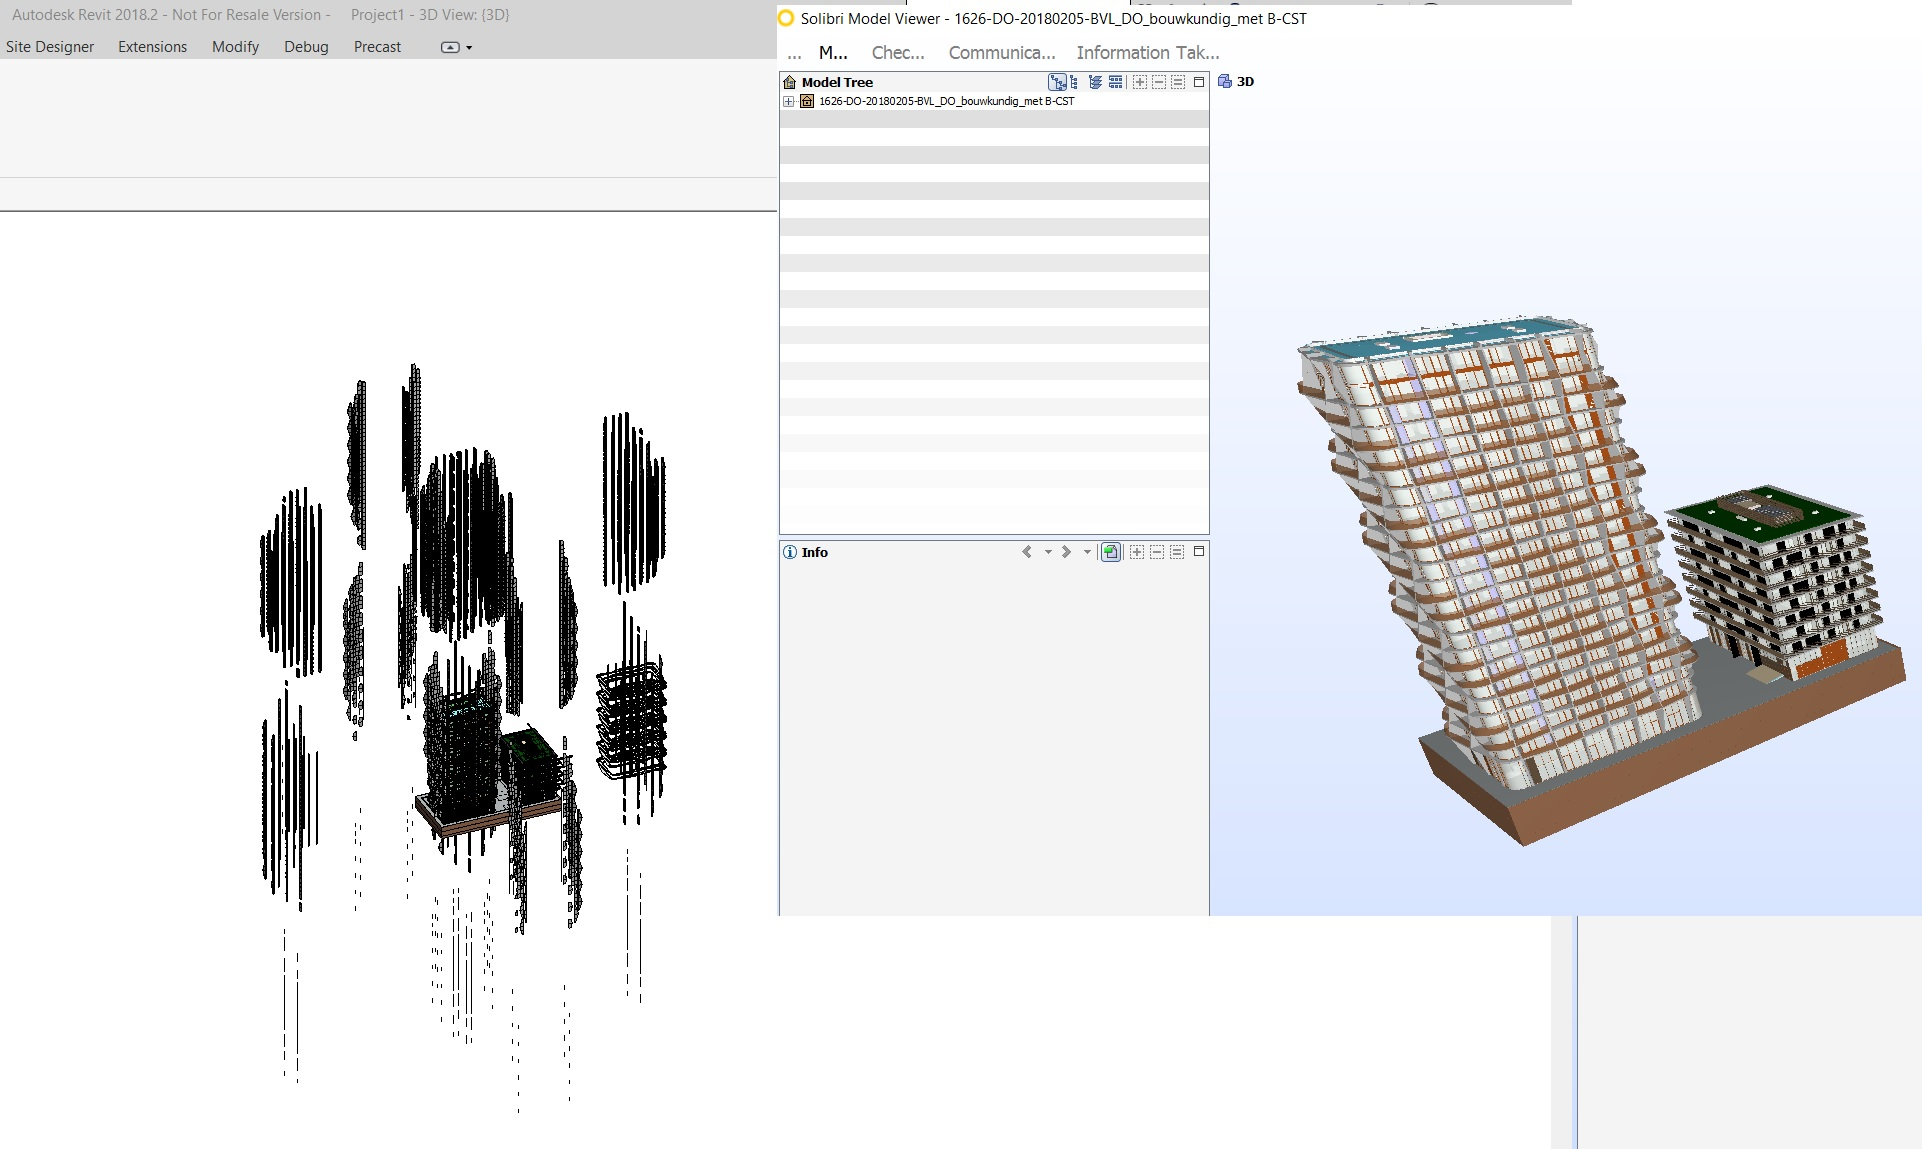 Insert and Open IFc file gives different result in Revit